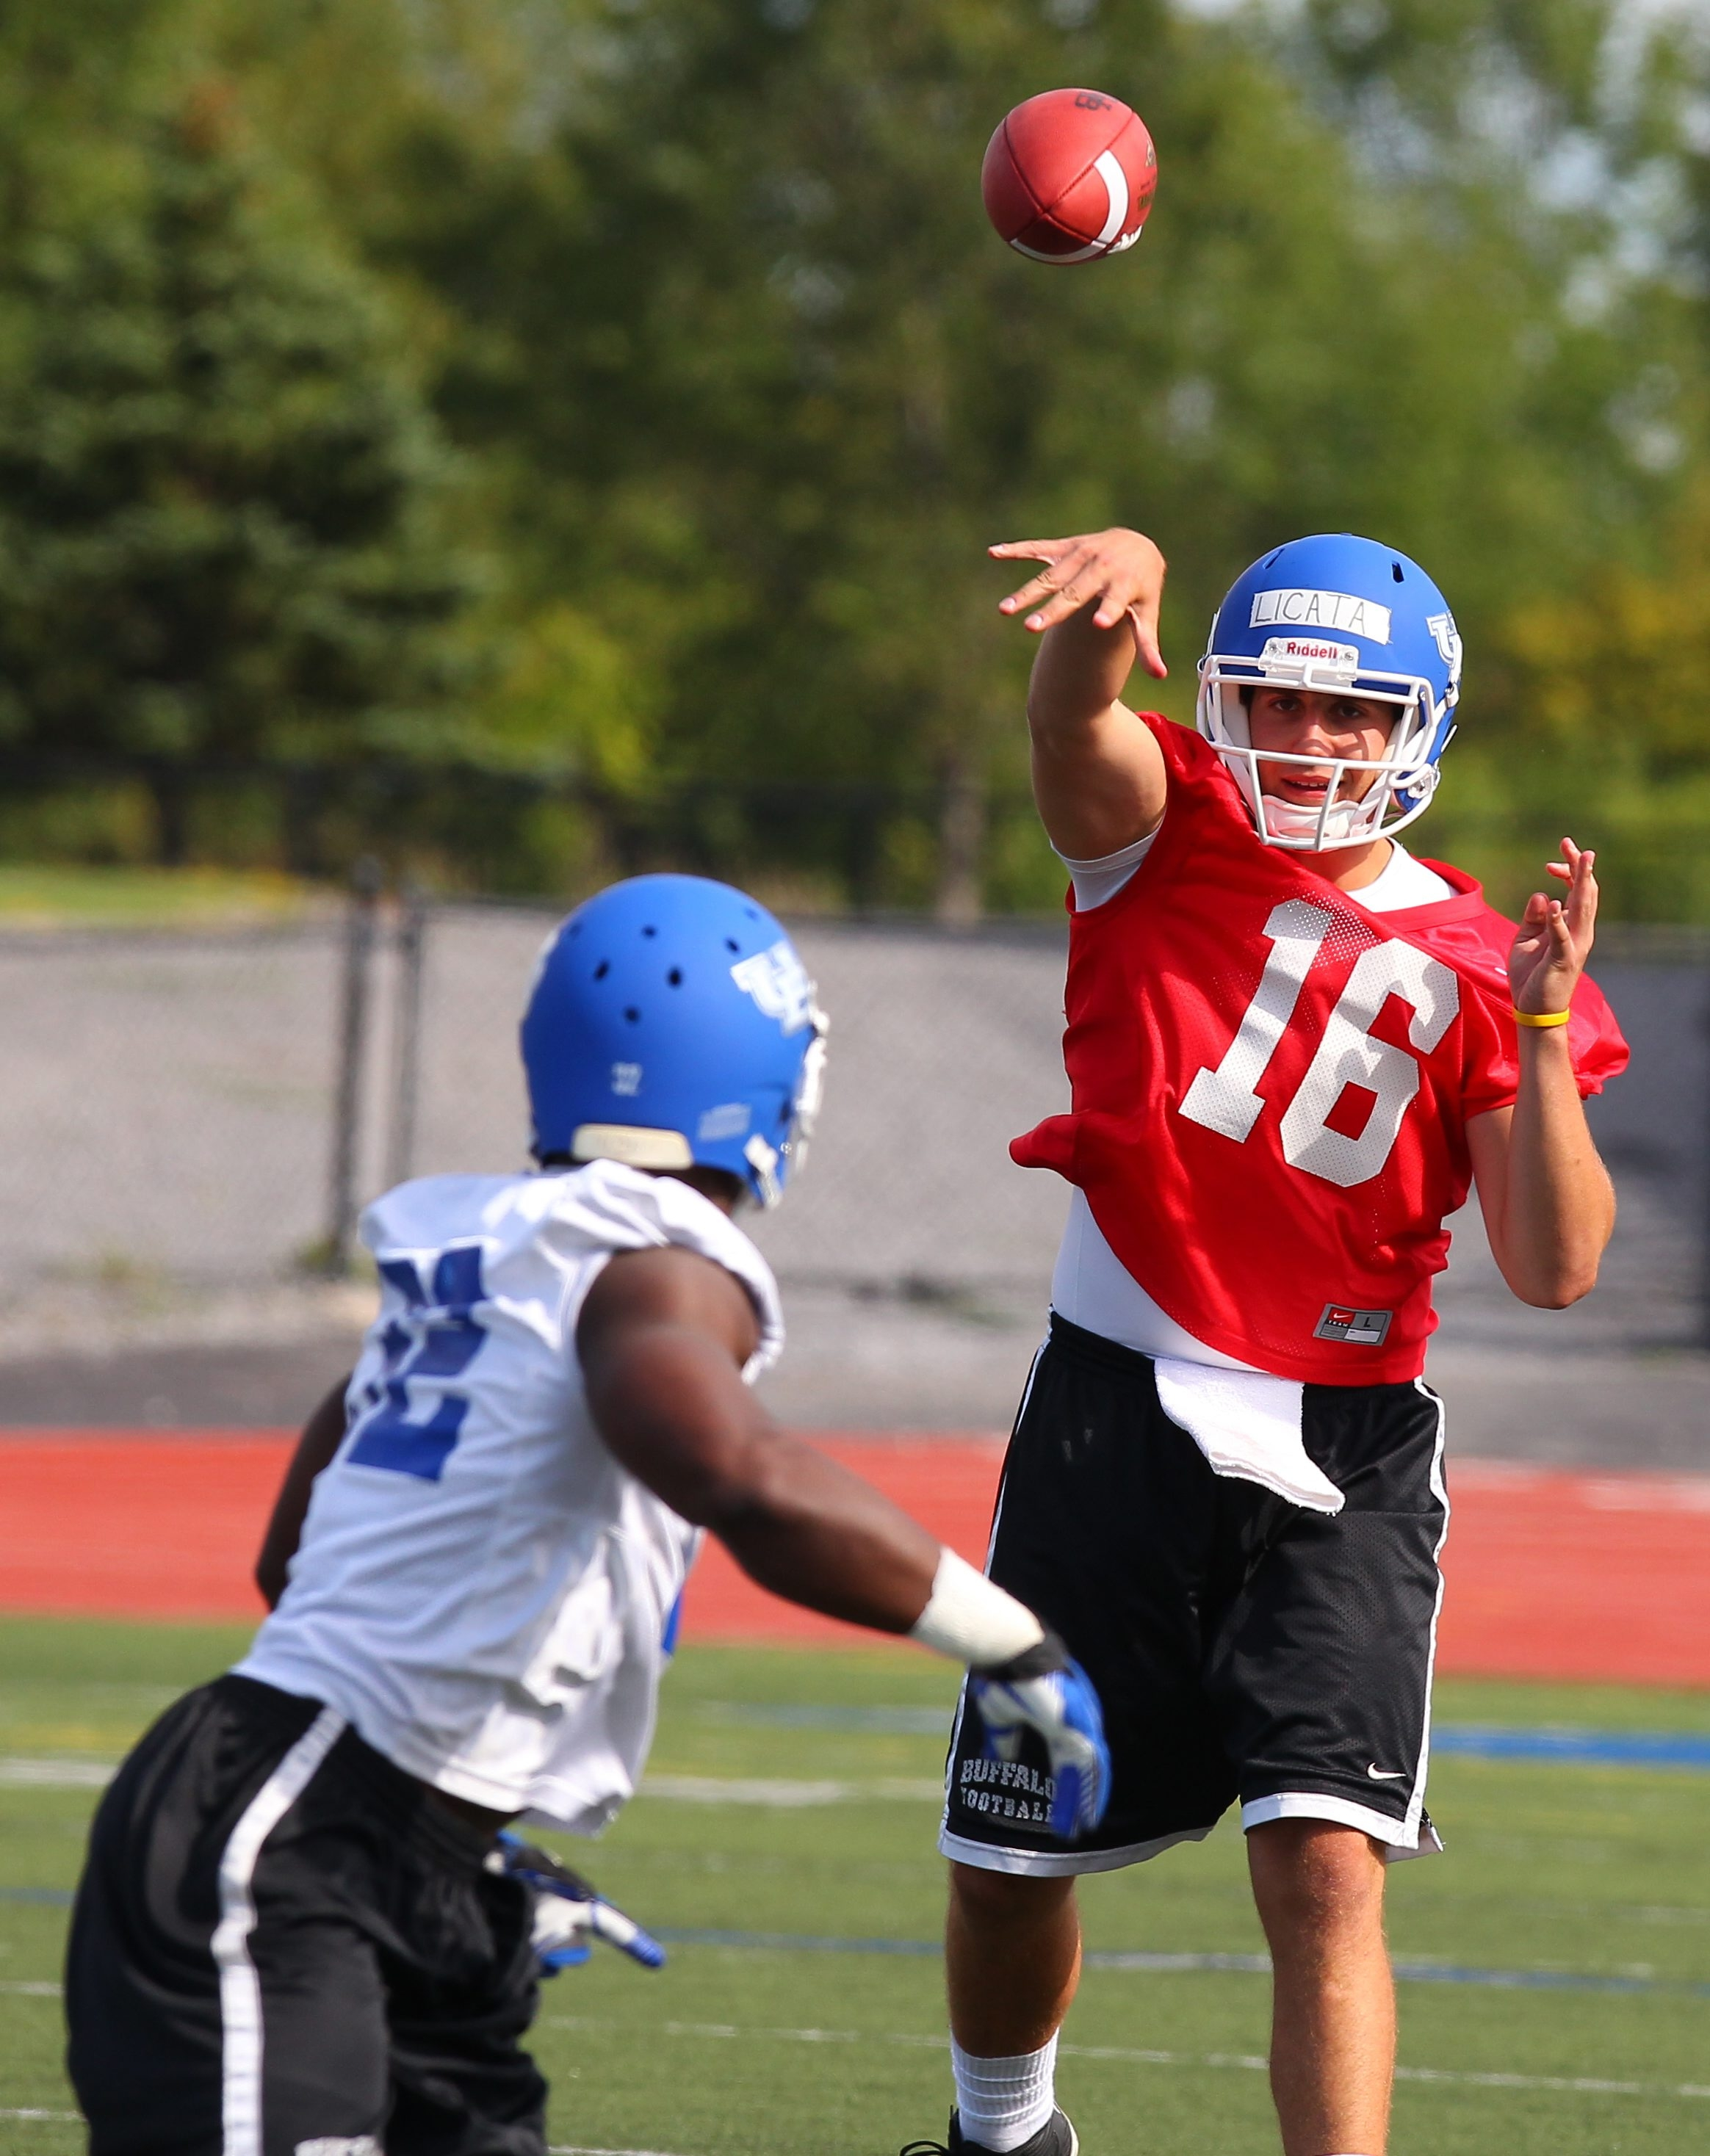 UB quarterback  Joe Licata throws a pass to running back Branden Oliver on opening day of camp.